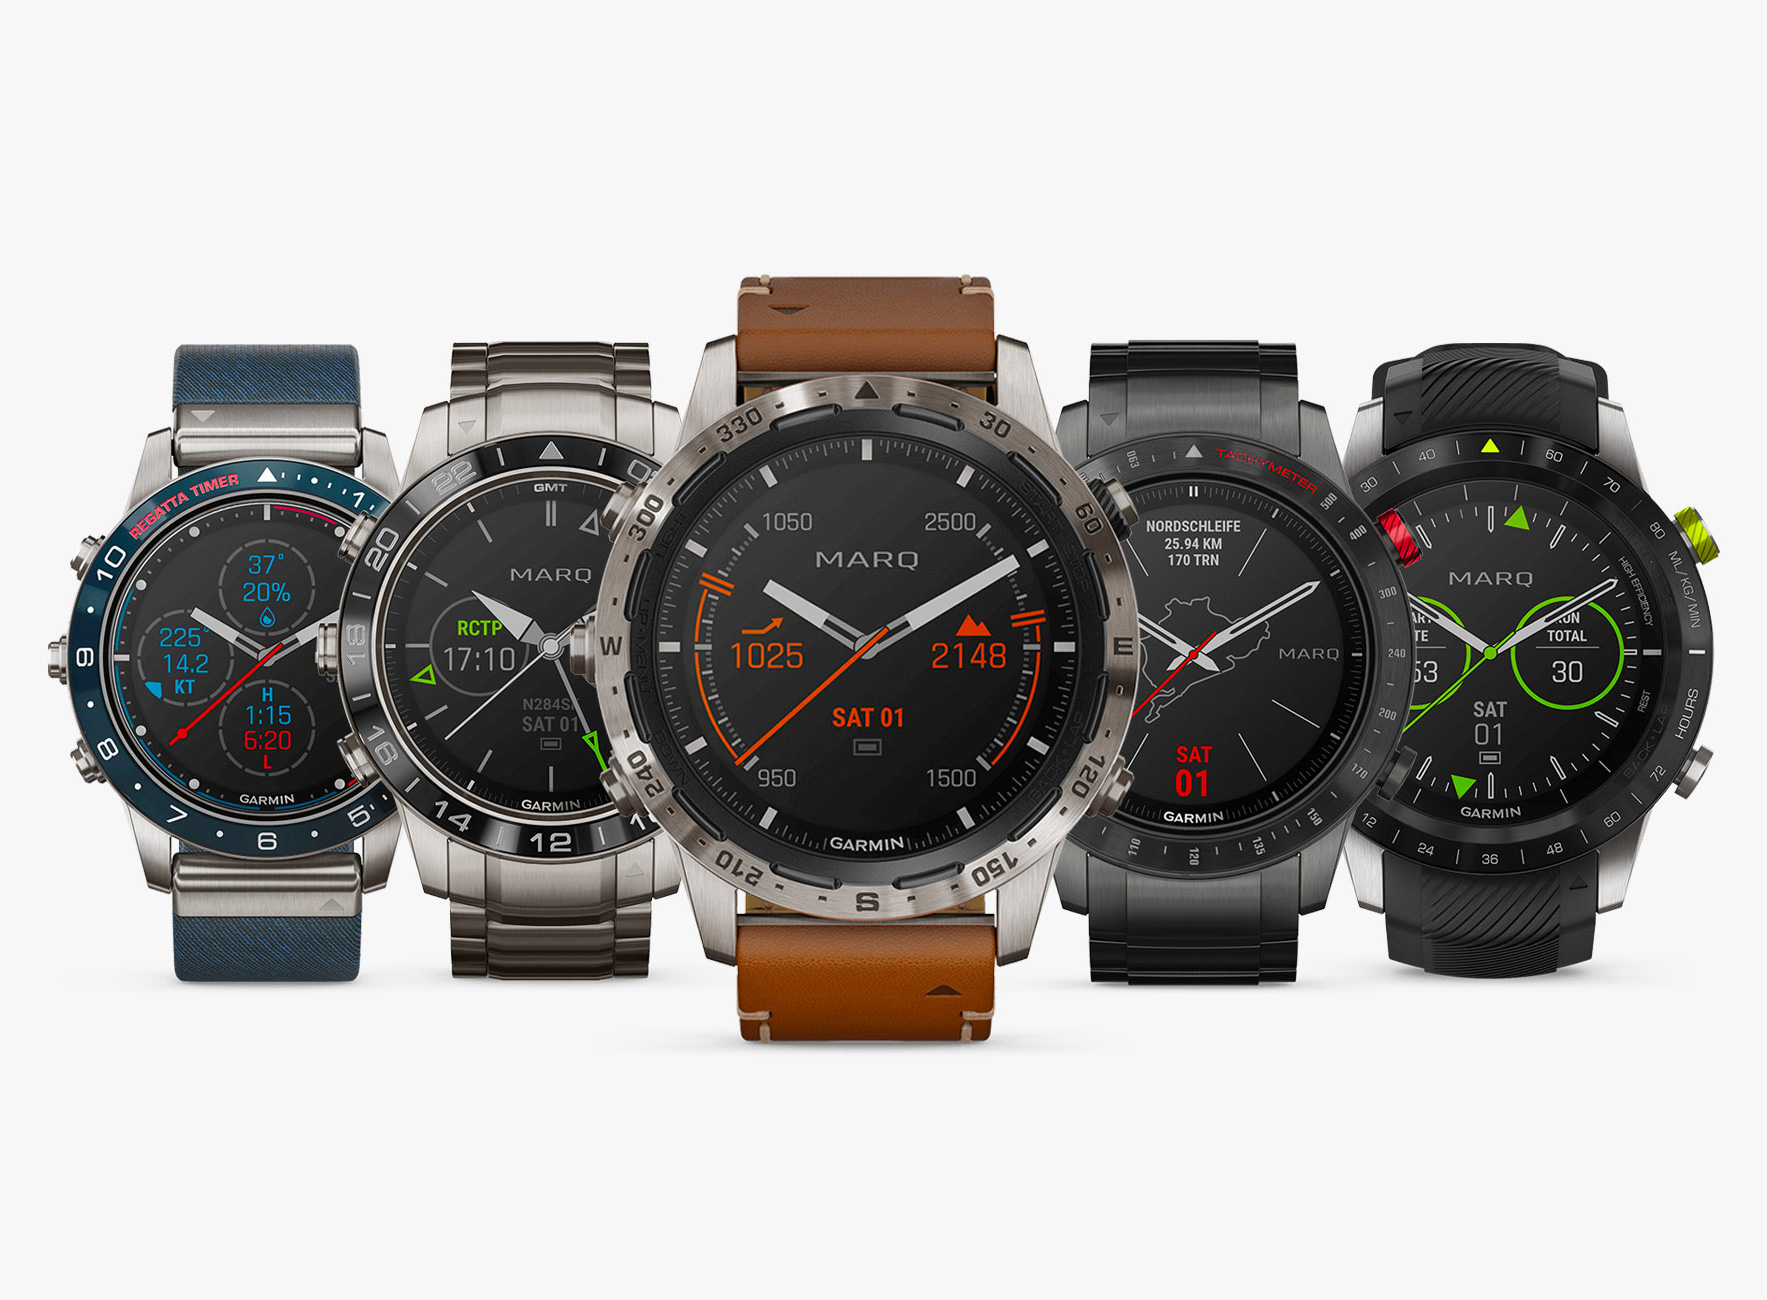 Garmin's MARQ Collection Watches Merge High-Tech Function & High-End Finish at werd.com